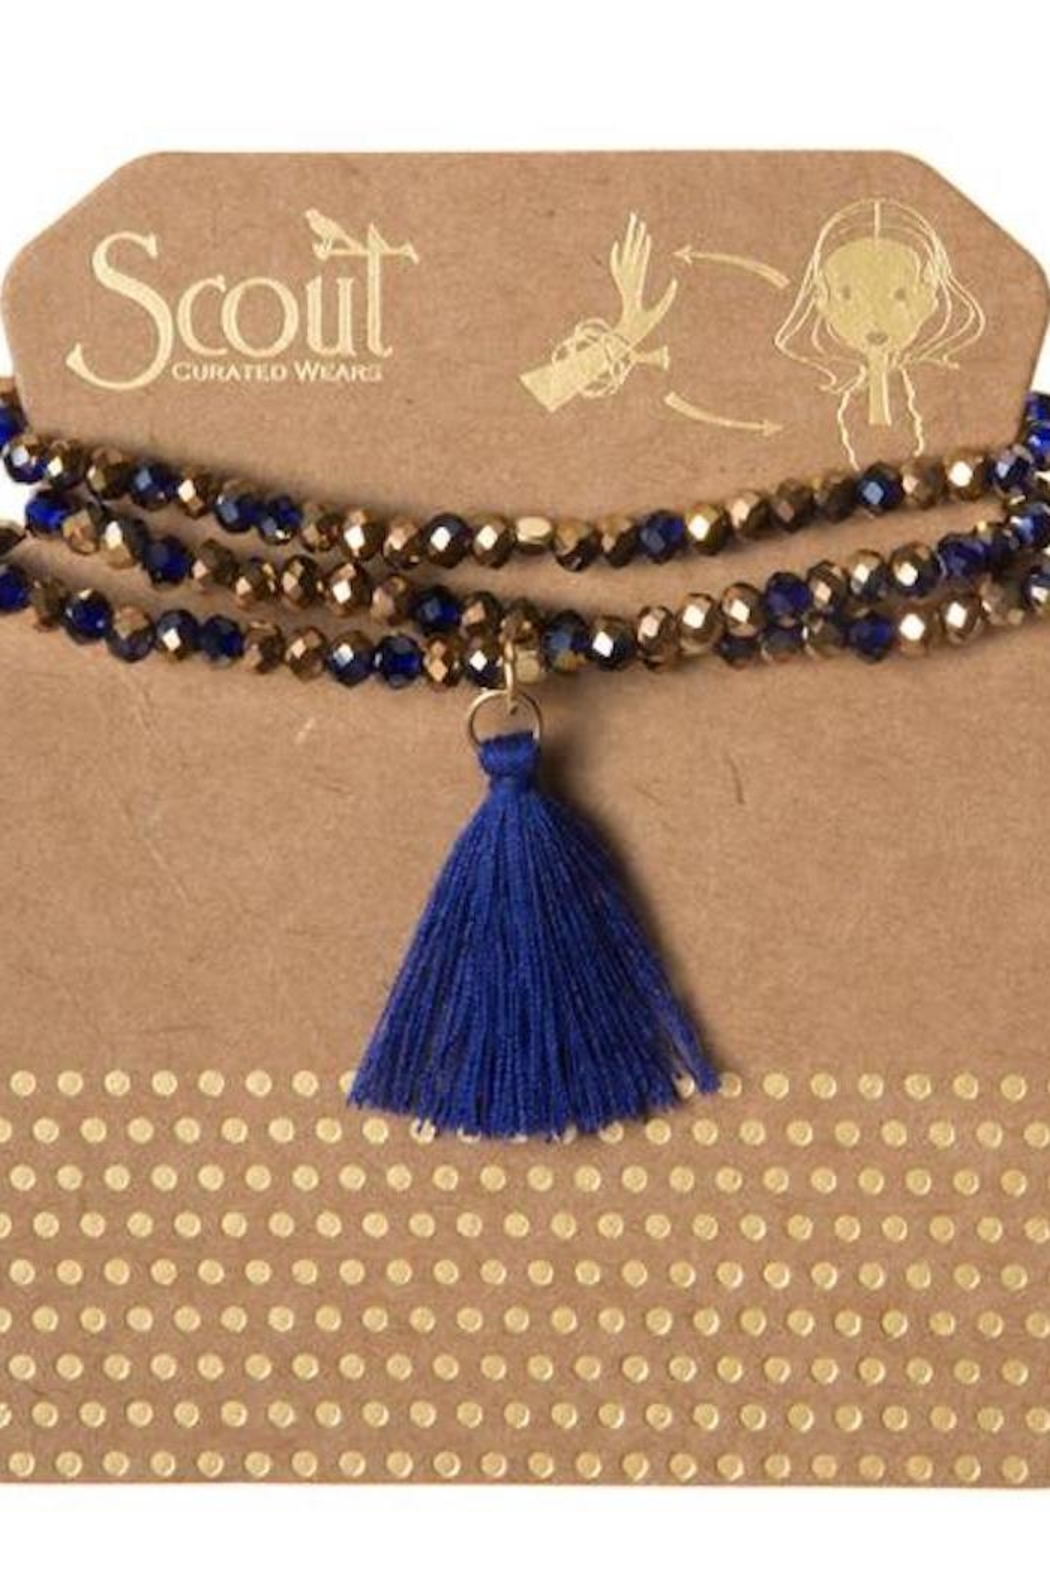 Scout CURATED WEARS Blue Tassel Wrap - Main Image